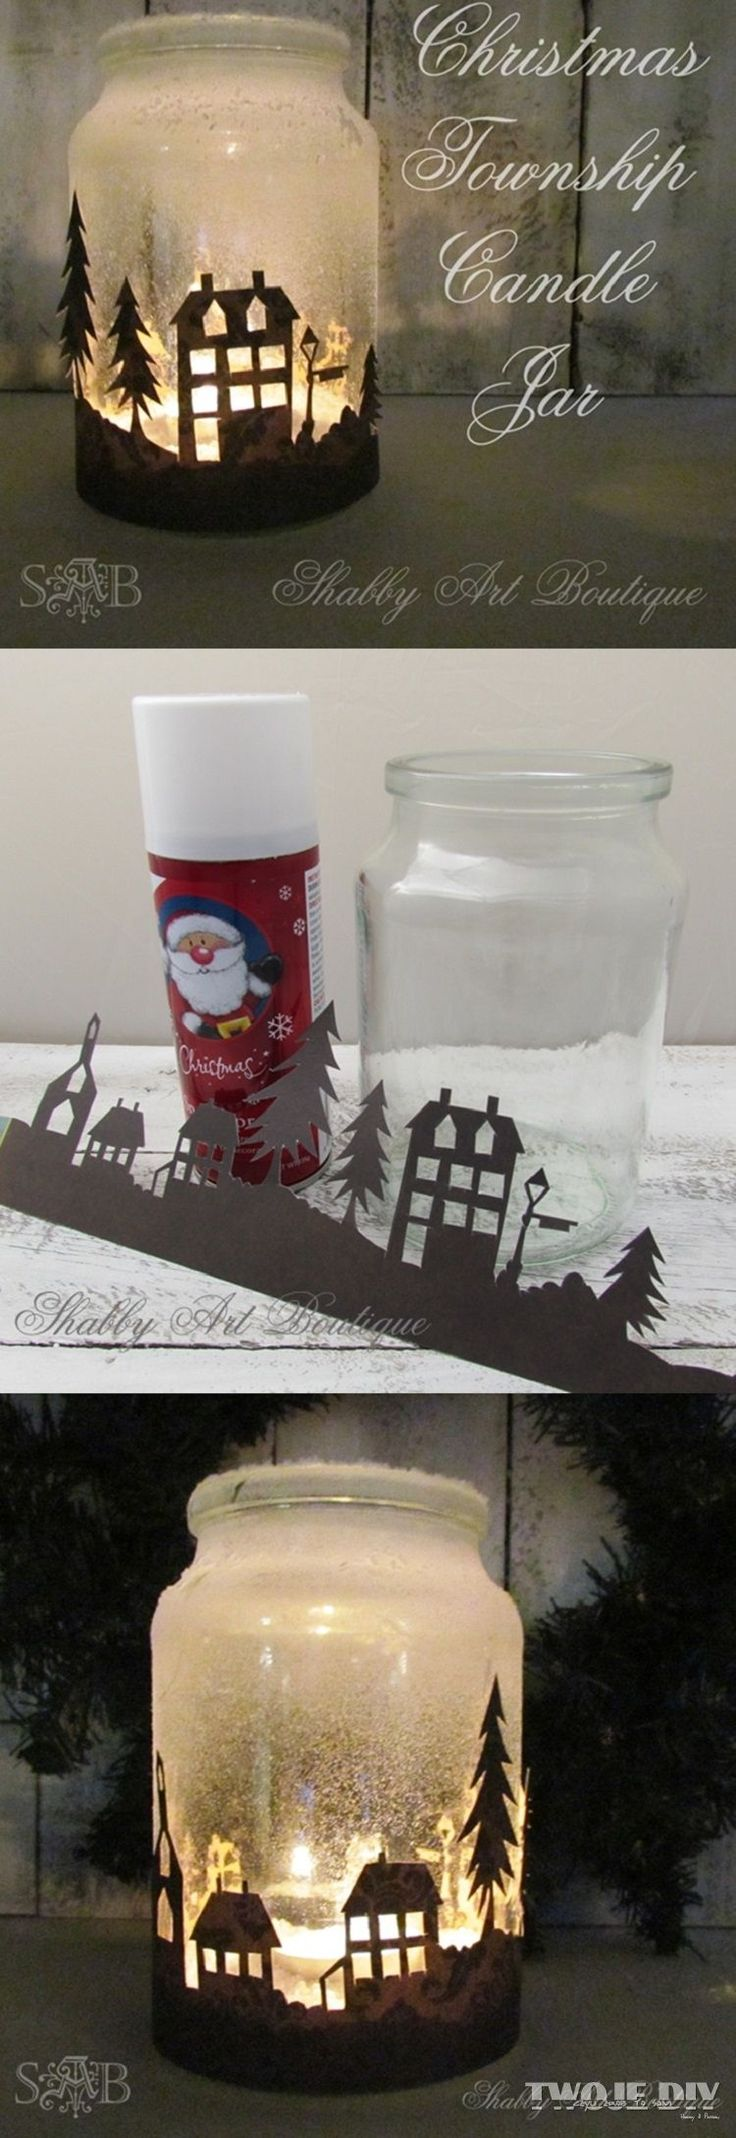 #KatieSheaDesign ♡❤ ❥ Christmas Township Candle Jar: Quick and easy candle jar that will look amazing when illuminated at night. complete directions.